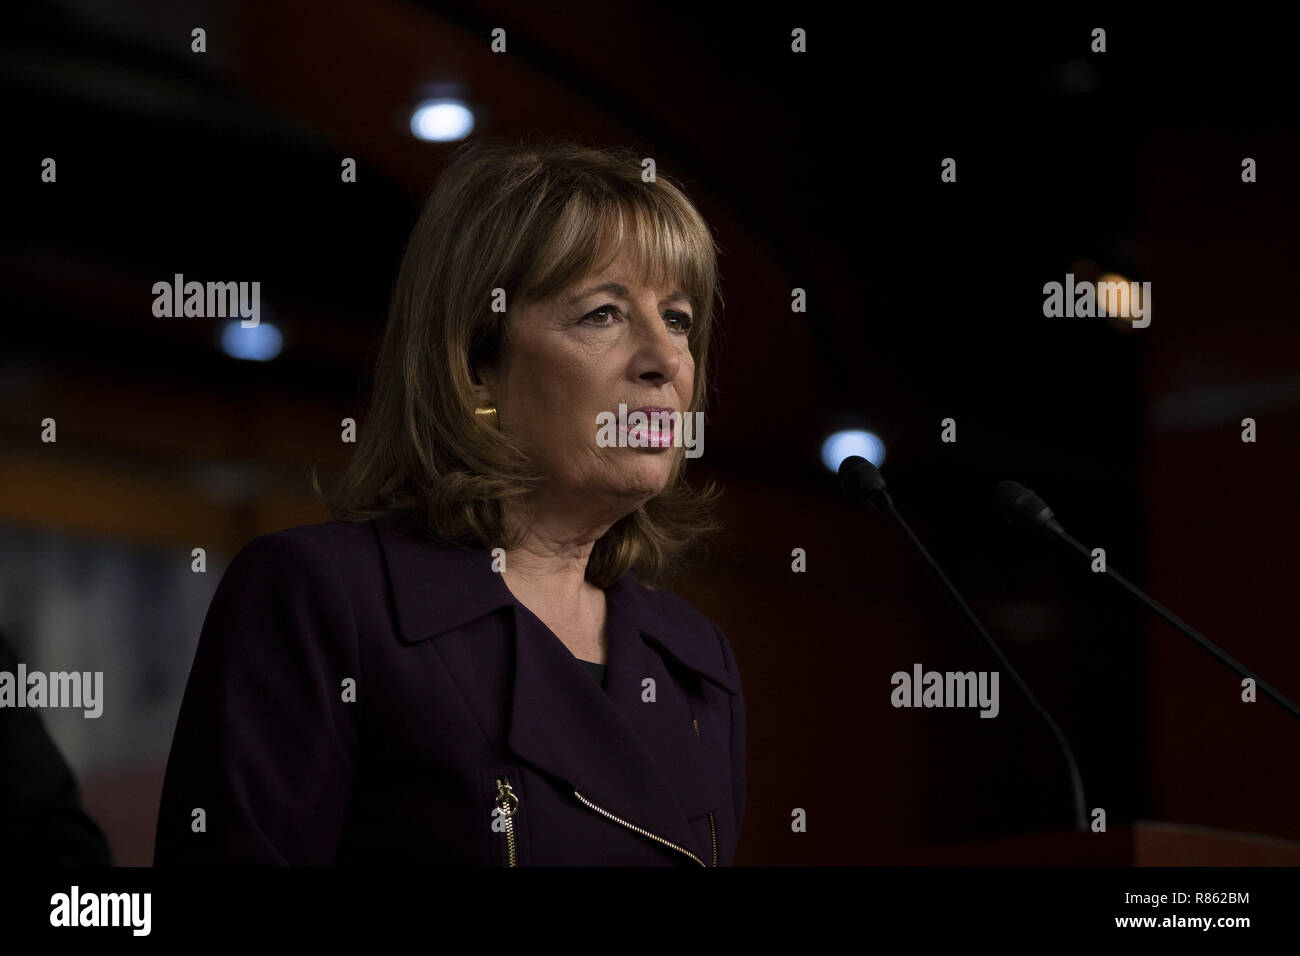 Washington, District of Columbia, USA. 13th Dec, 2018. Rep. JACKIE SPEIER (D-Calif.) at a press conference on the Congressional Accountability Act of 1995 Reform Act Credit: Douglas Christian/ZUMA Wire/Alamy Live News - Stock Image